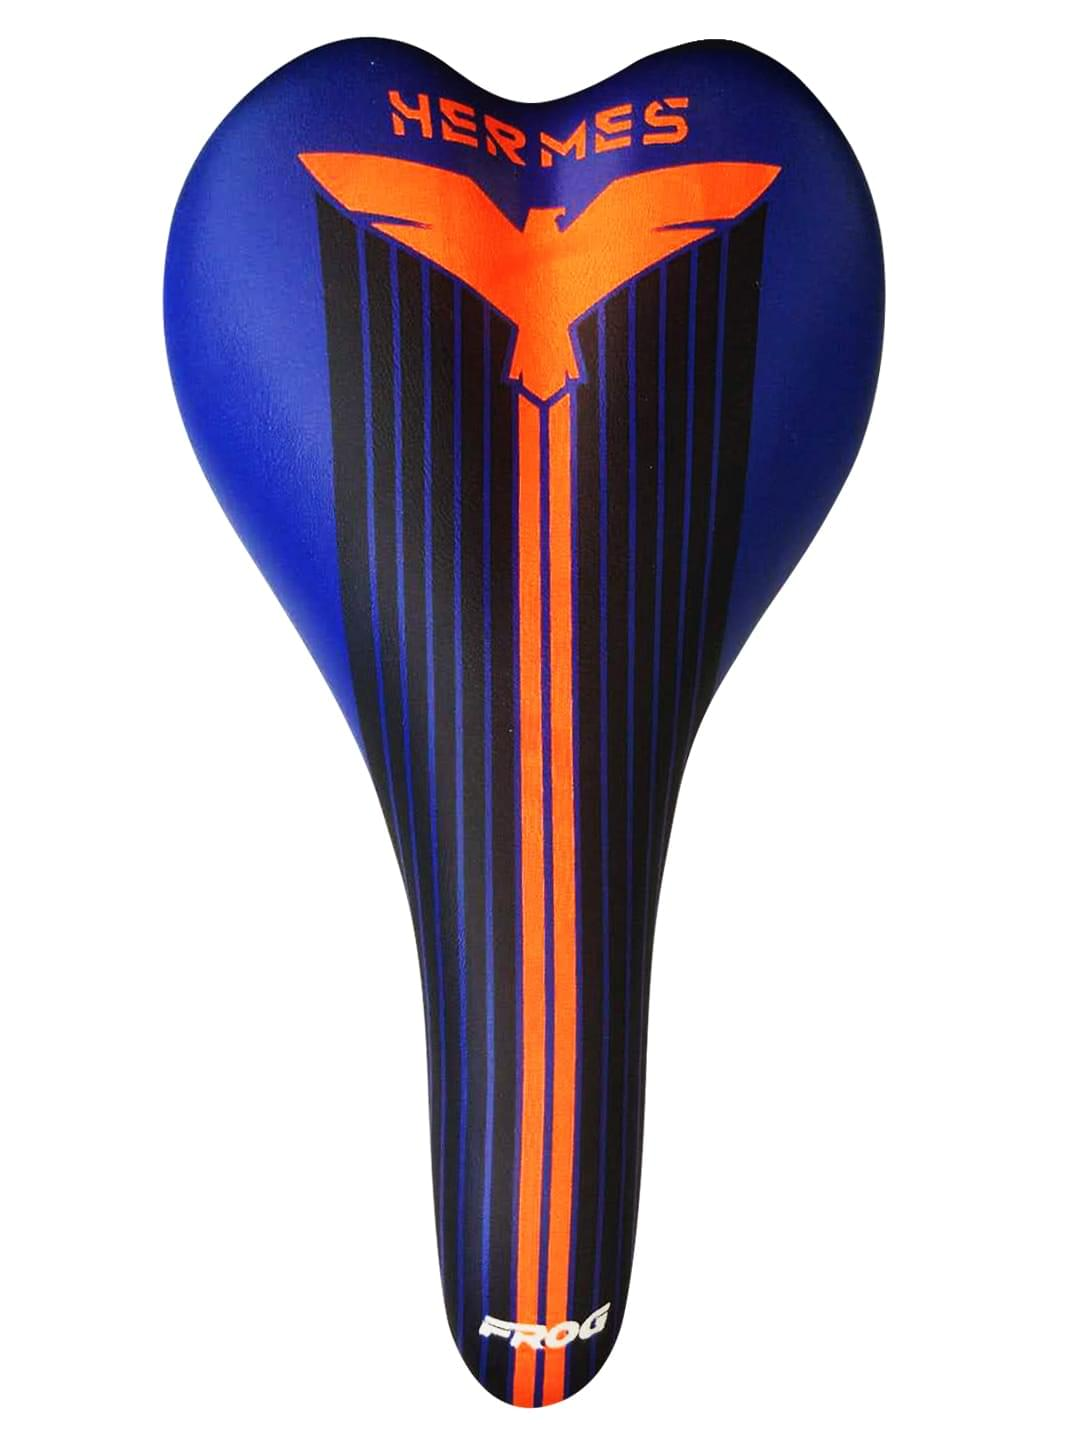 Hermes 26 Blue Orange (Disc-Brakes) image 5